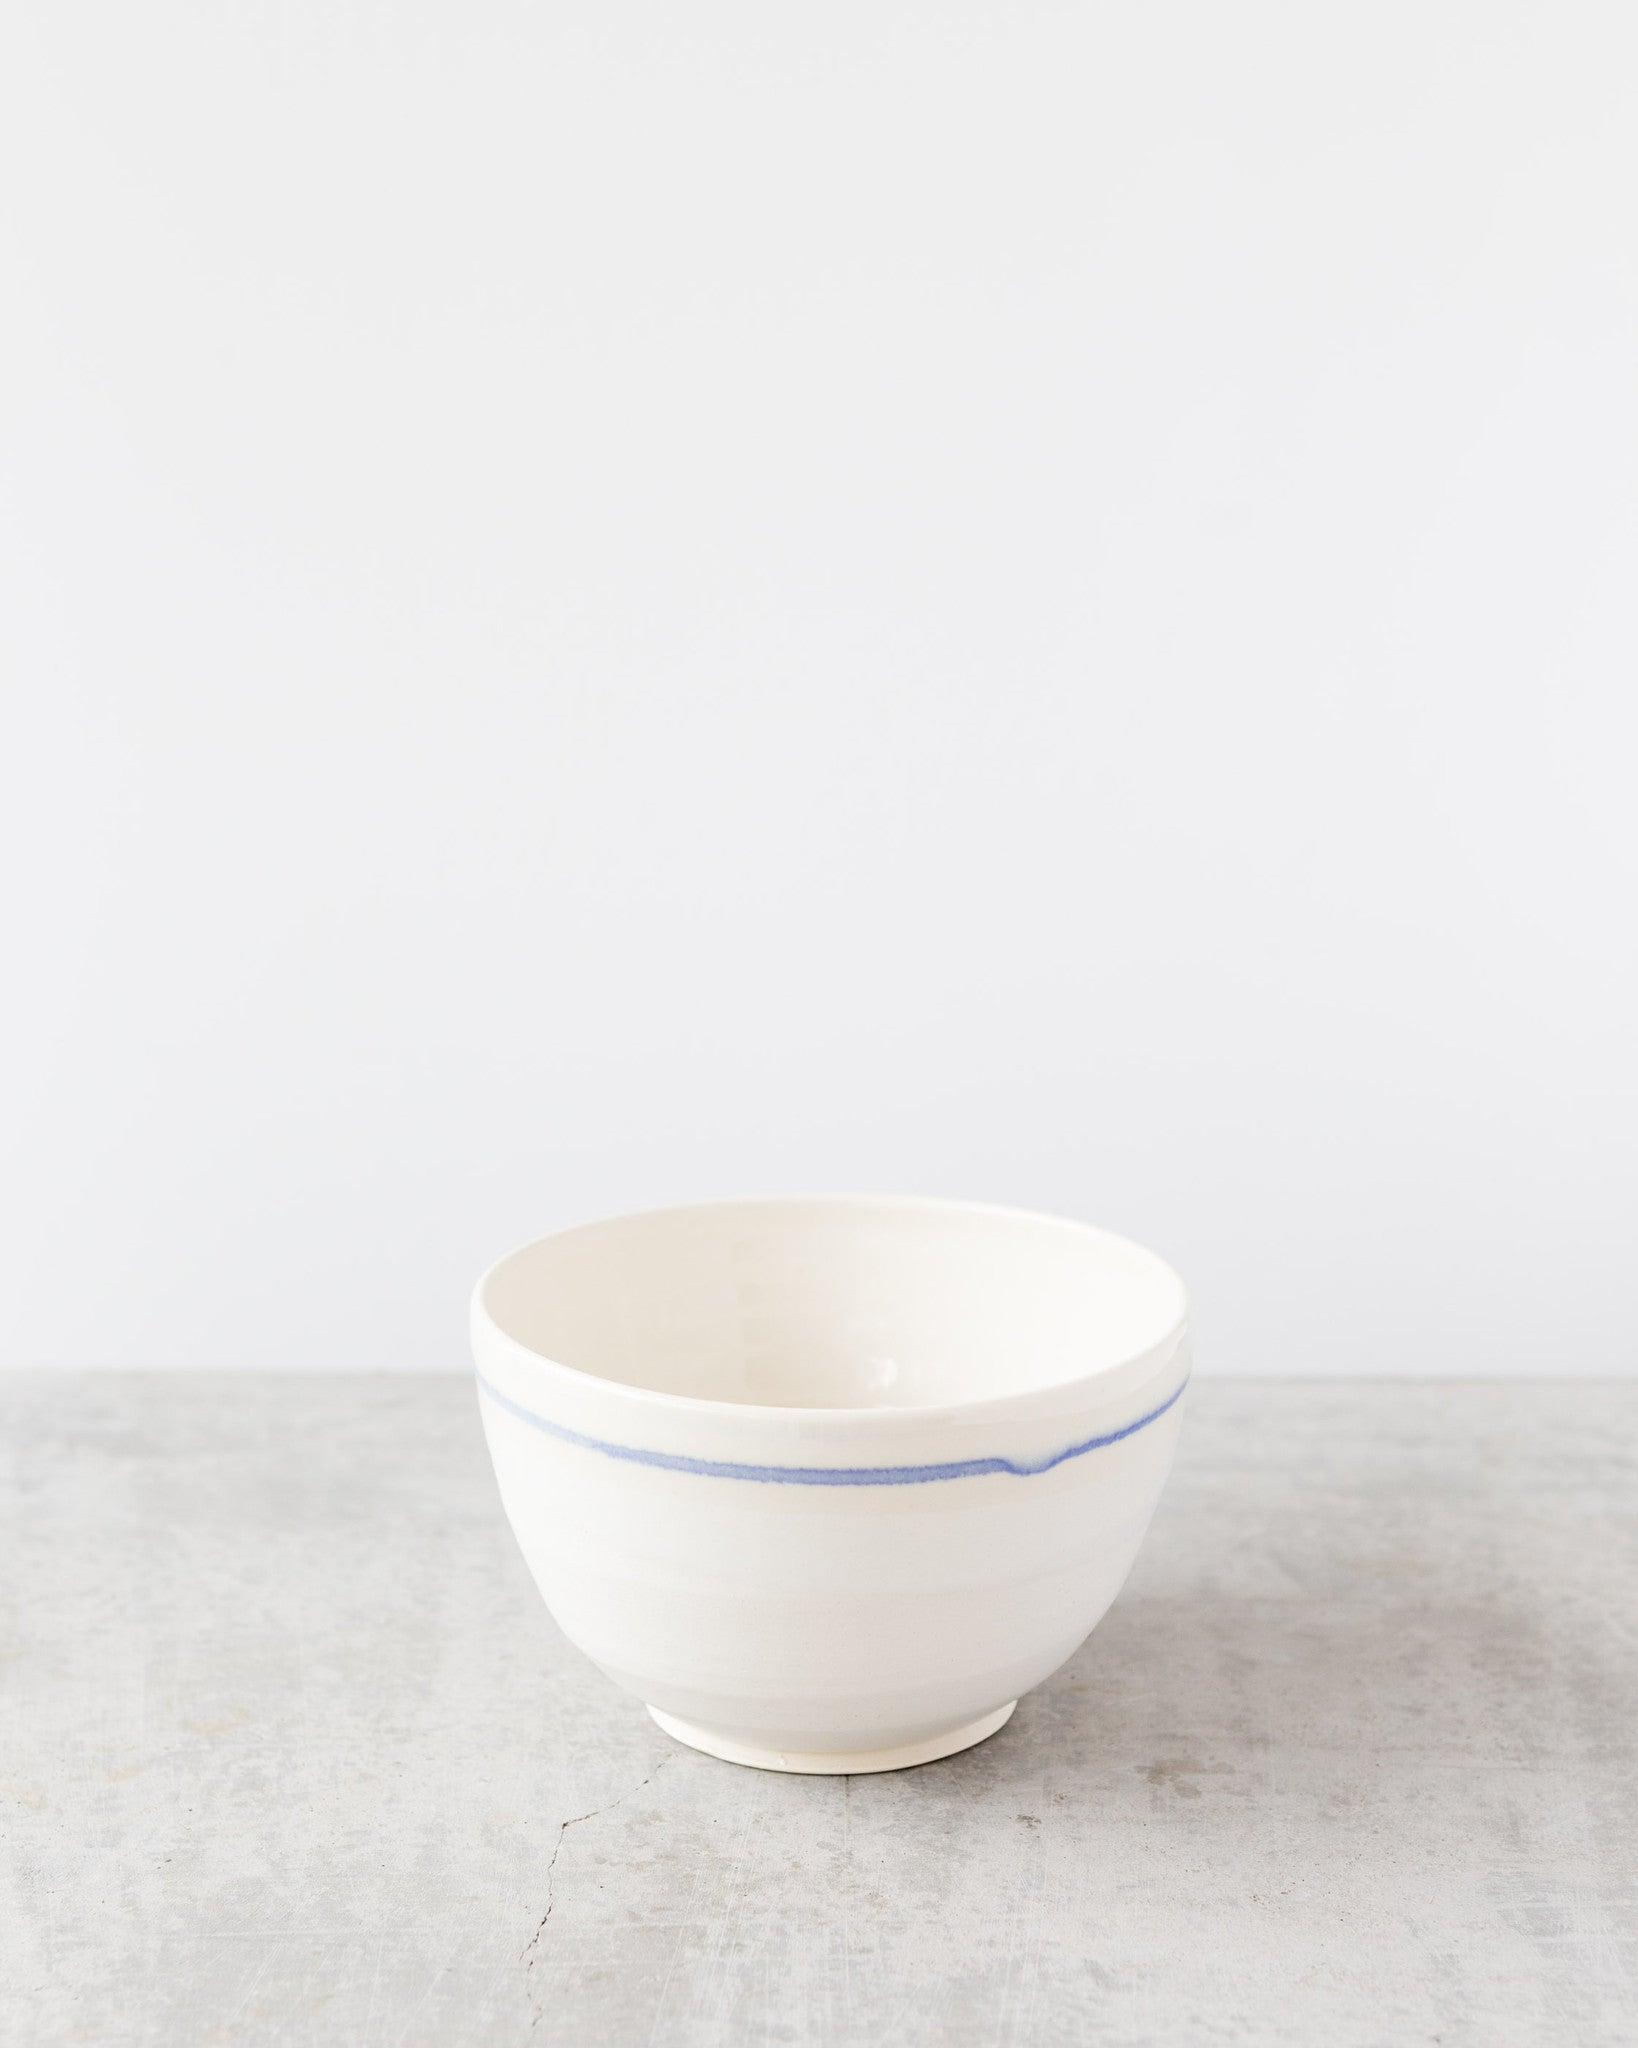 Kalika Bowlby 1920 Bowl in Blue Stripe